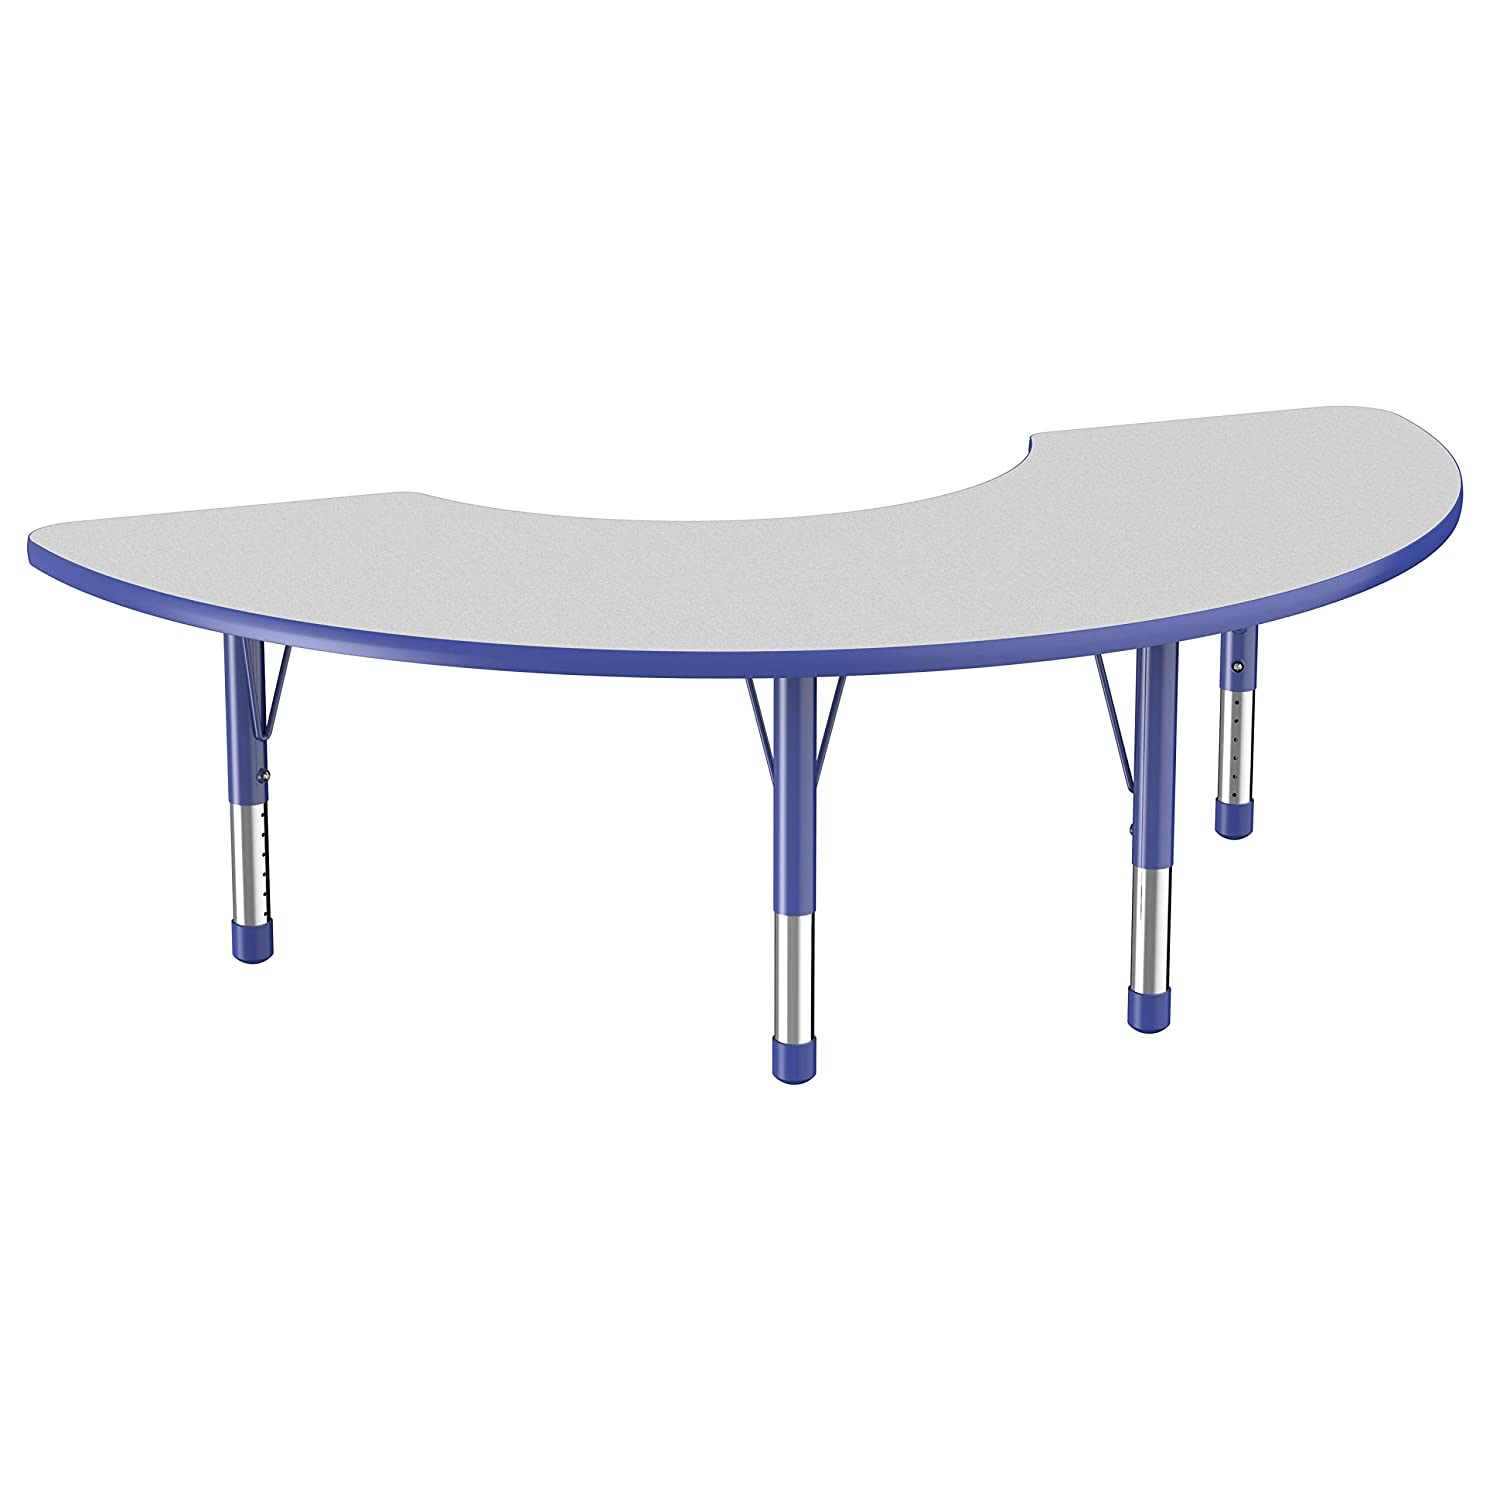 Factory Direct Partners Half Moon Activity School and Classroom Kids Table (36 x 72 inch), Toddler Legs for Collaborative Seating Environments, Adjustable Height 15-24 inches - Gray Top and Blue Edge